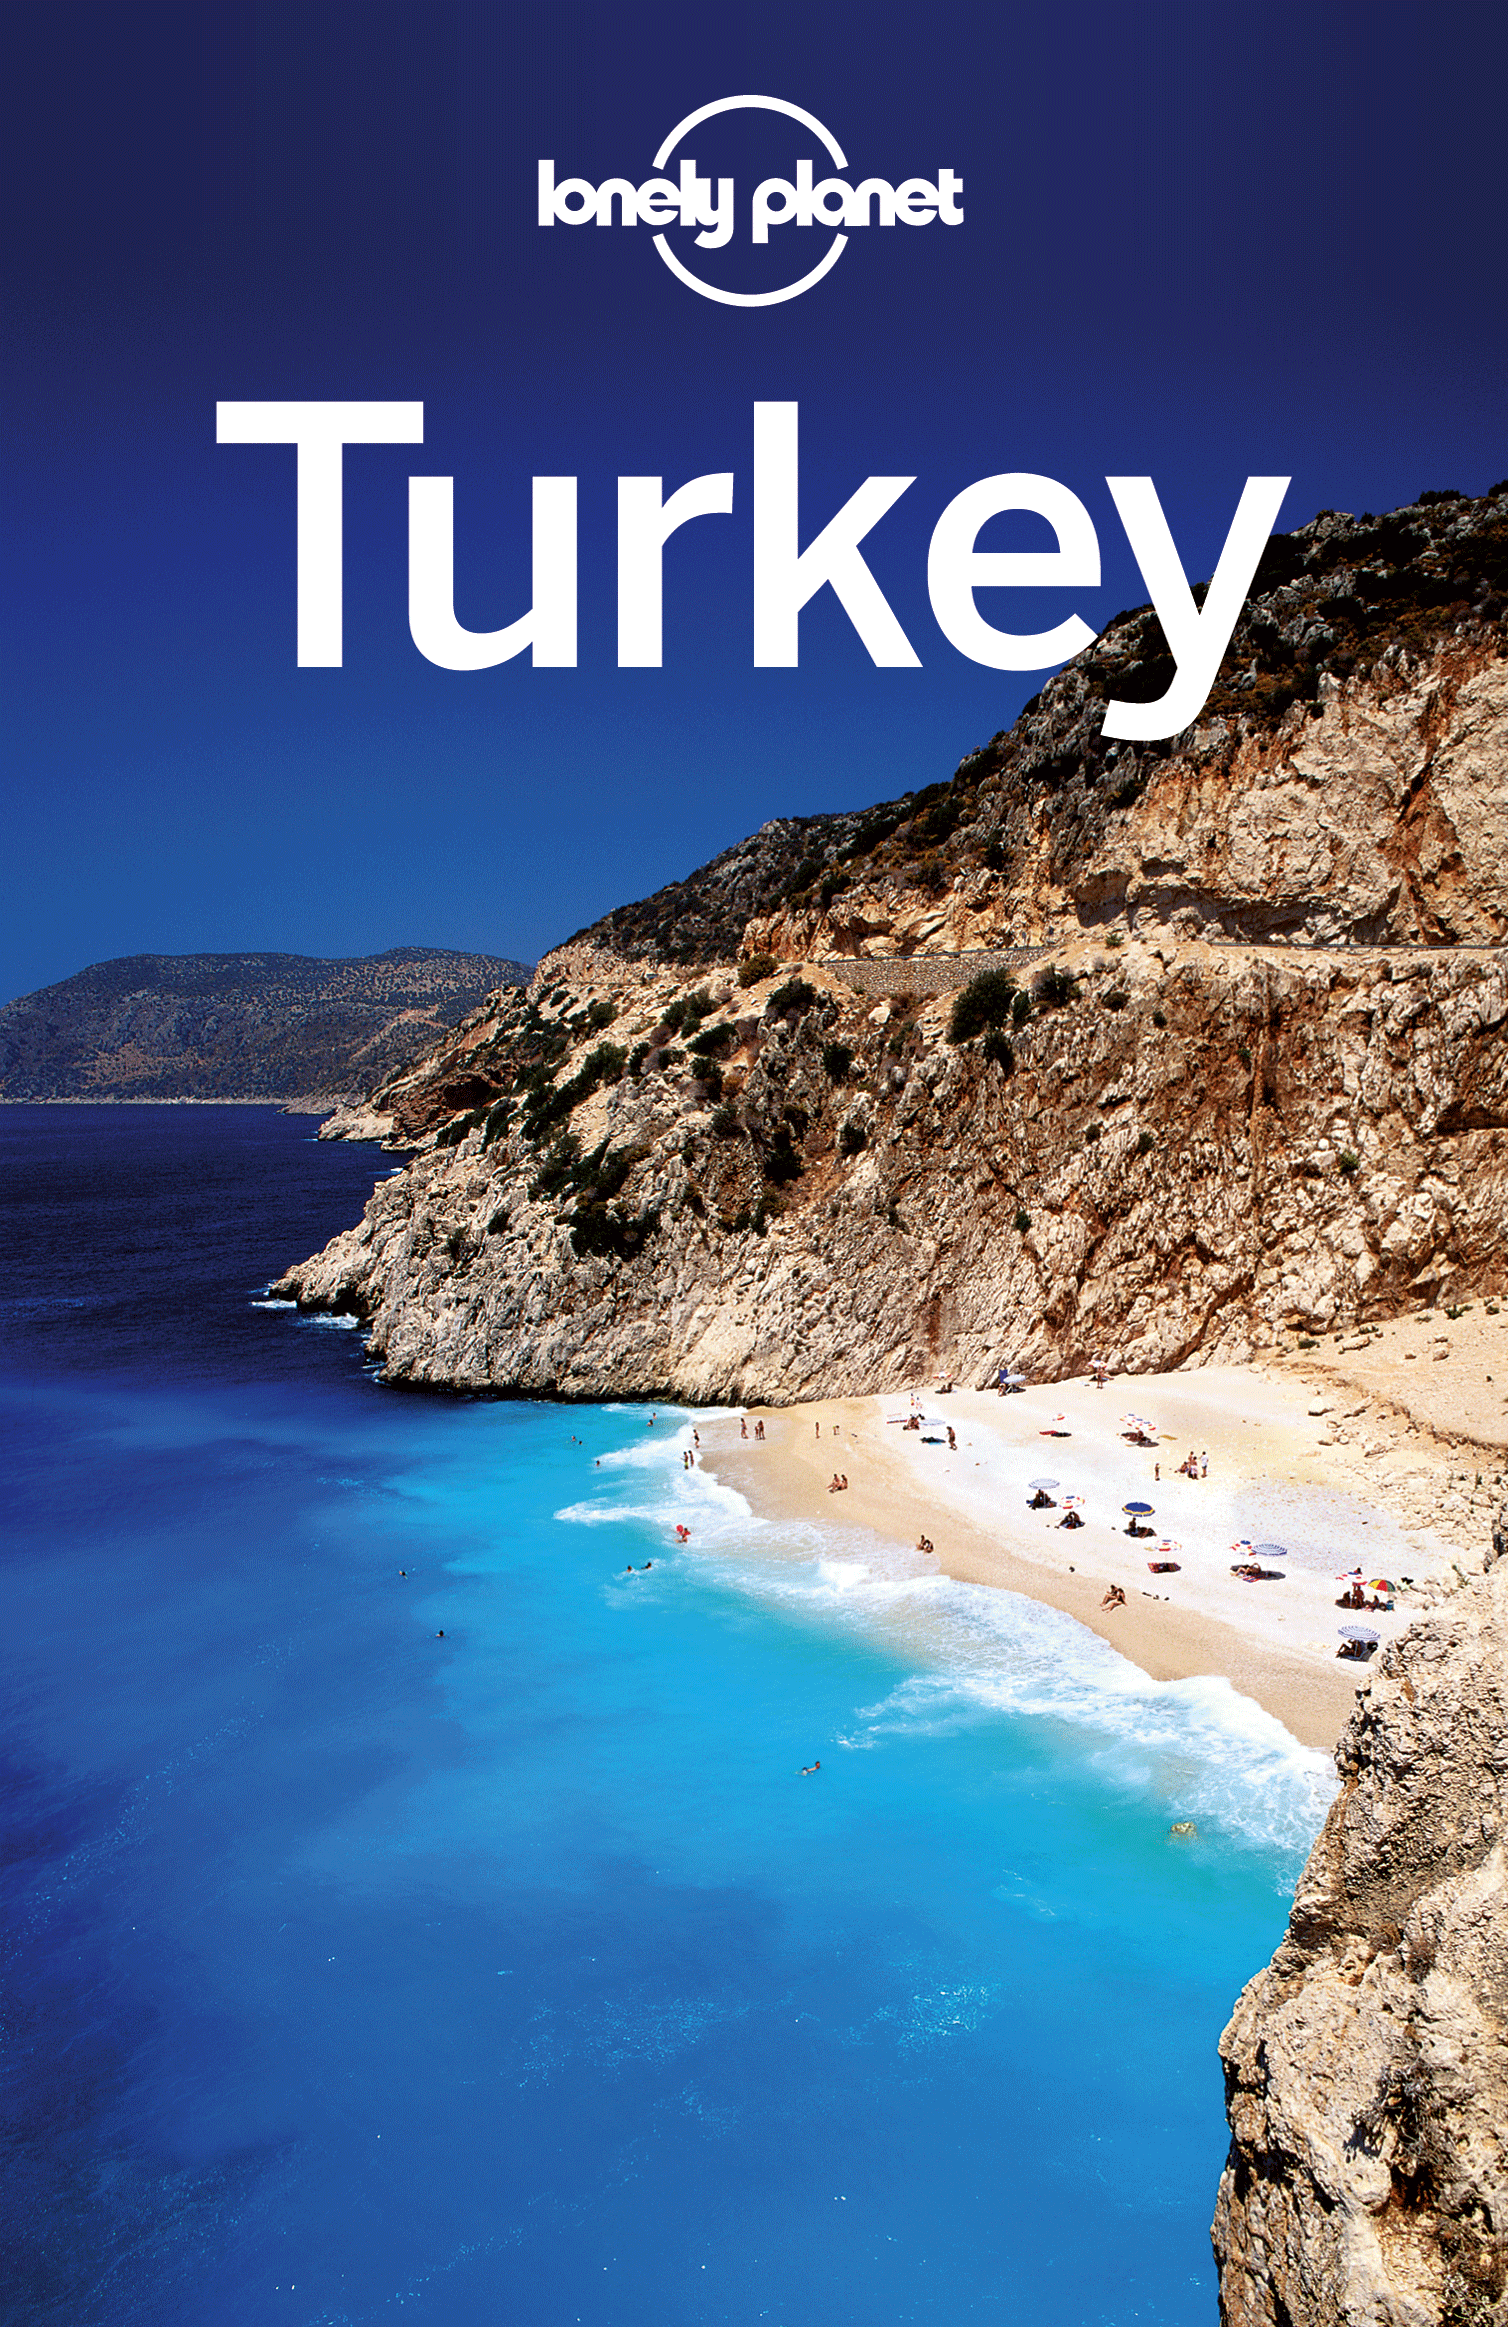 Lonely Planet Turkey By: Brandon Presser,Brett Atkinson,James Bainbridge,Jean-Bernard Carillet,Lonely Planet,Steve Fallon,Tom Spurling,Virginia Maxwell